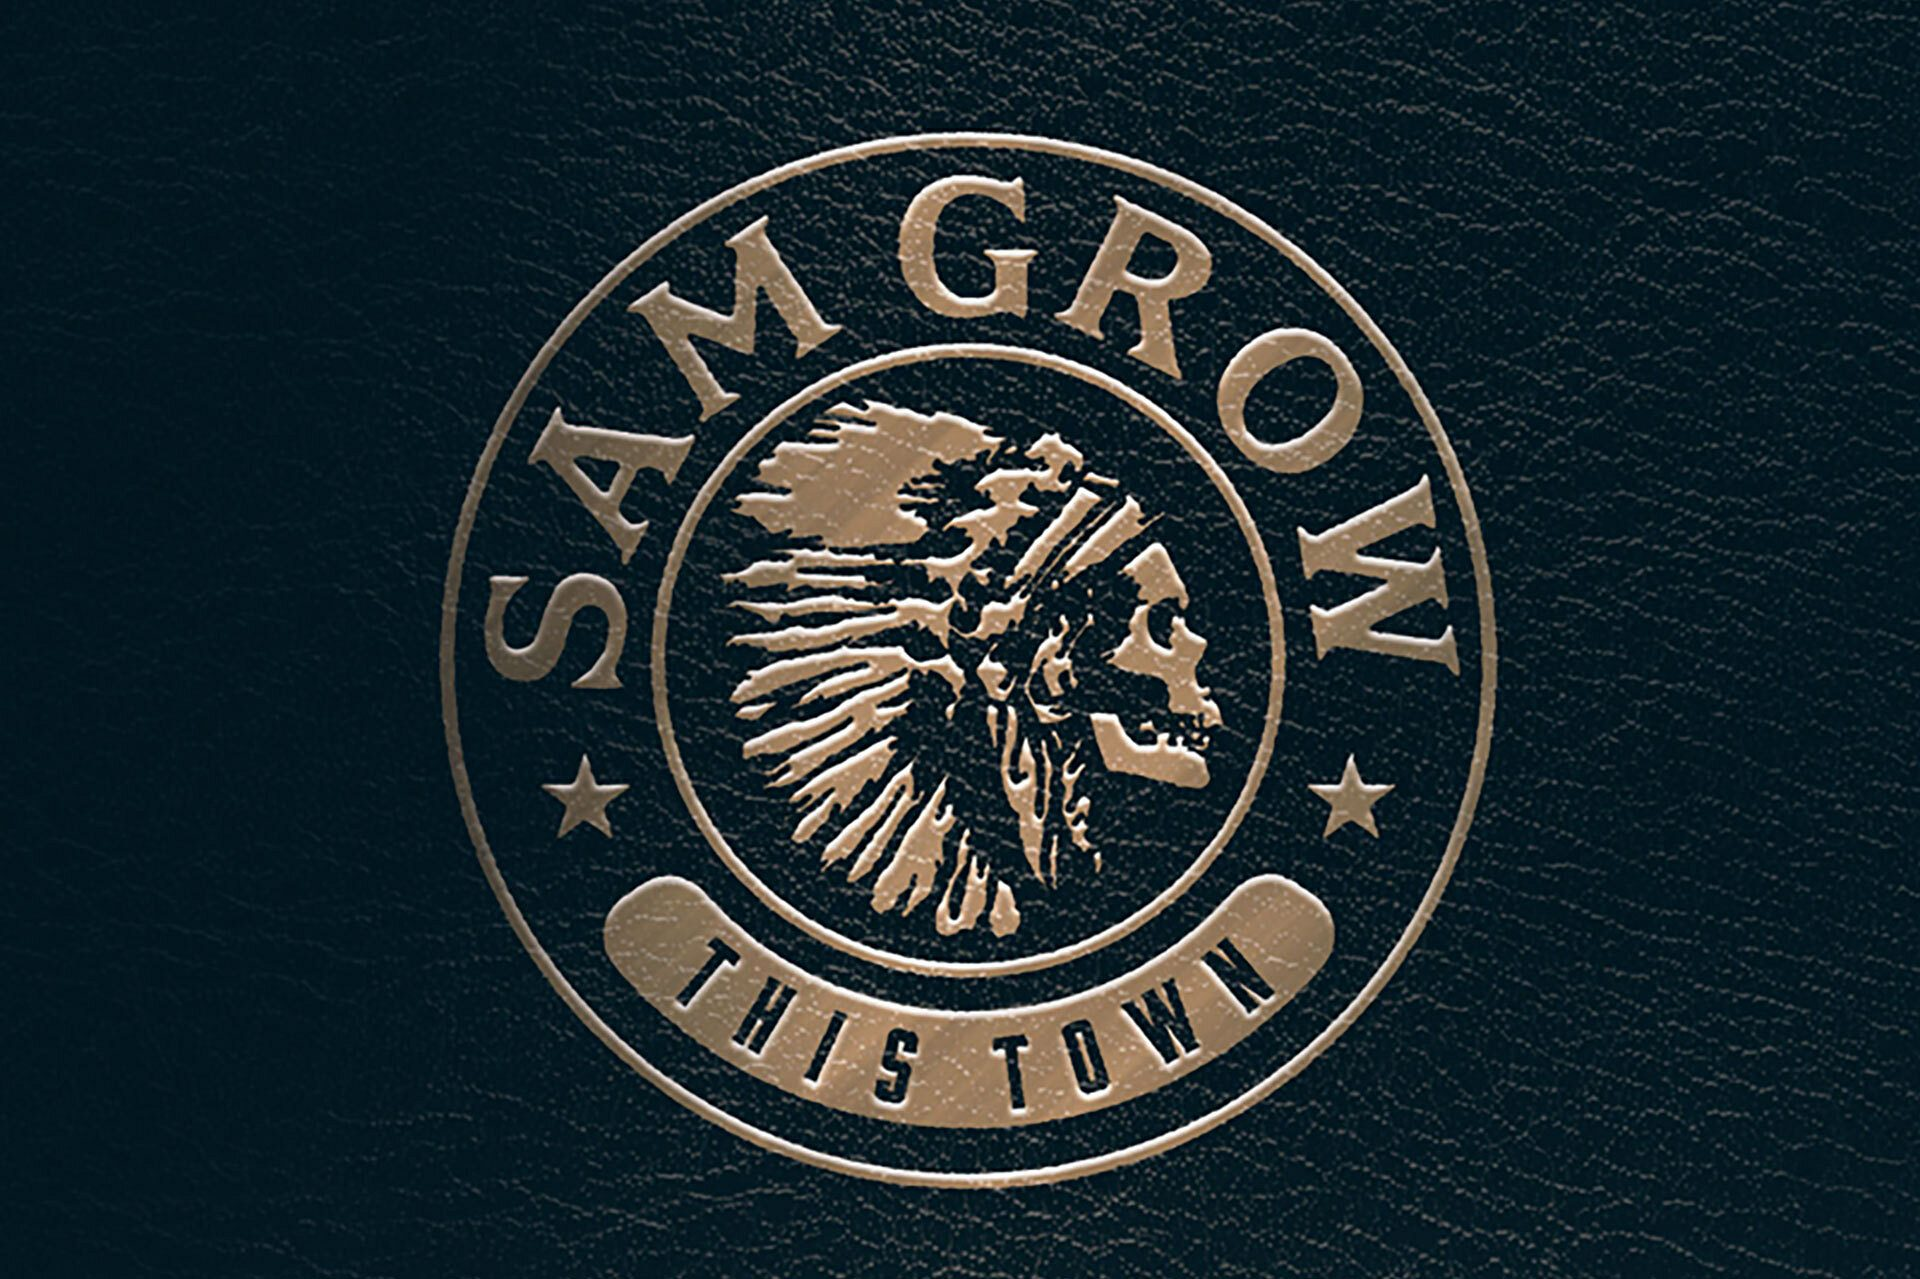 Sam Grow Releases New Album, 'This Town'